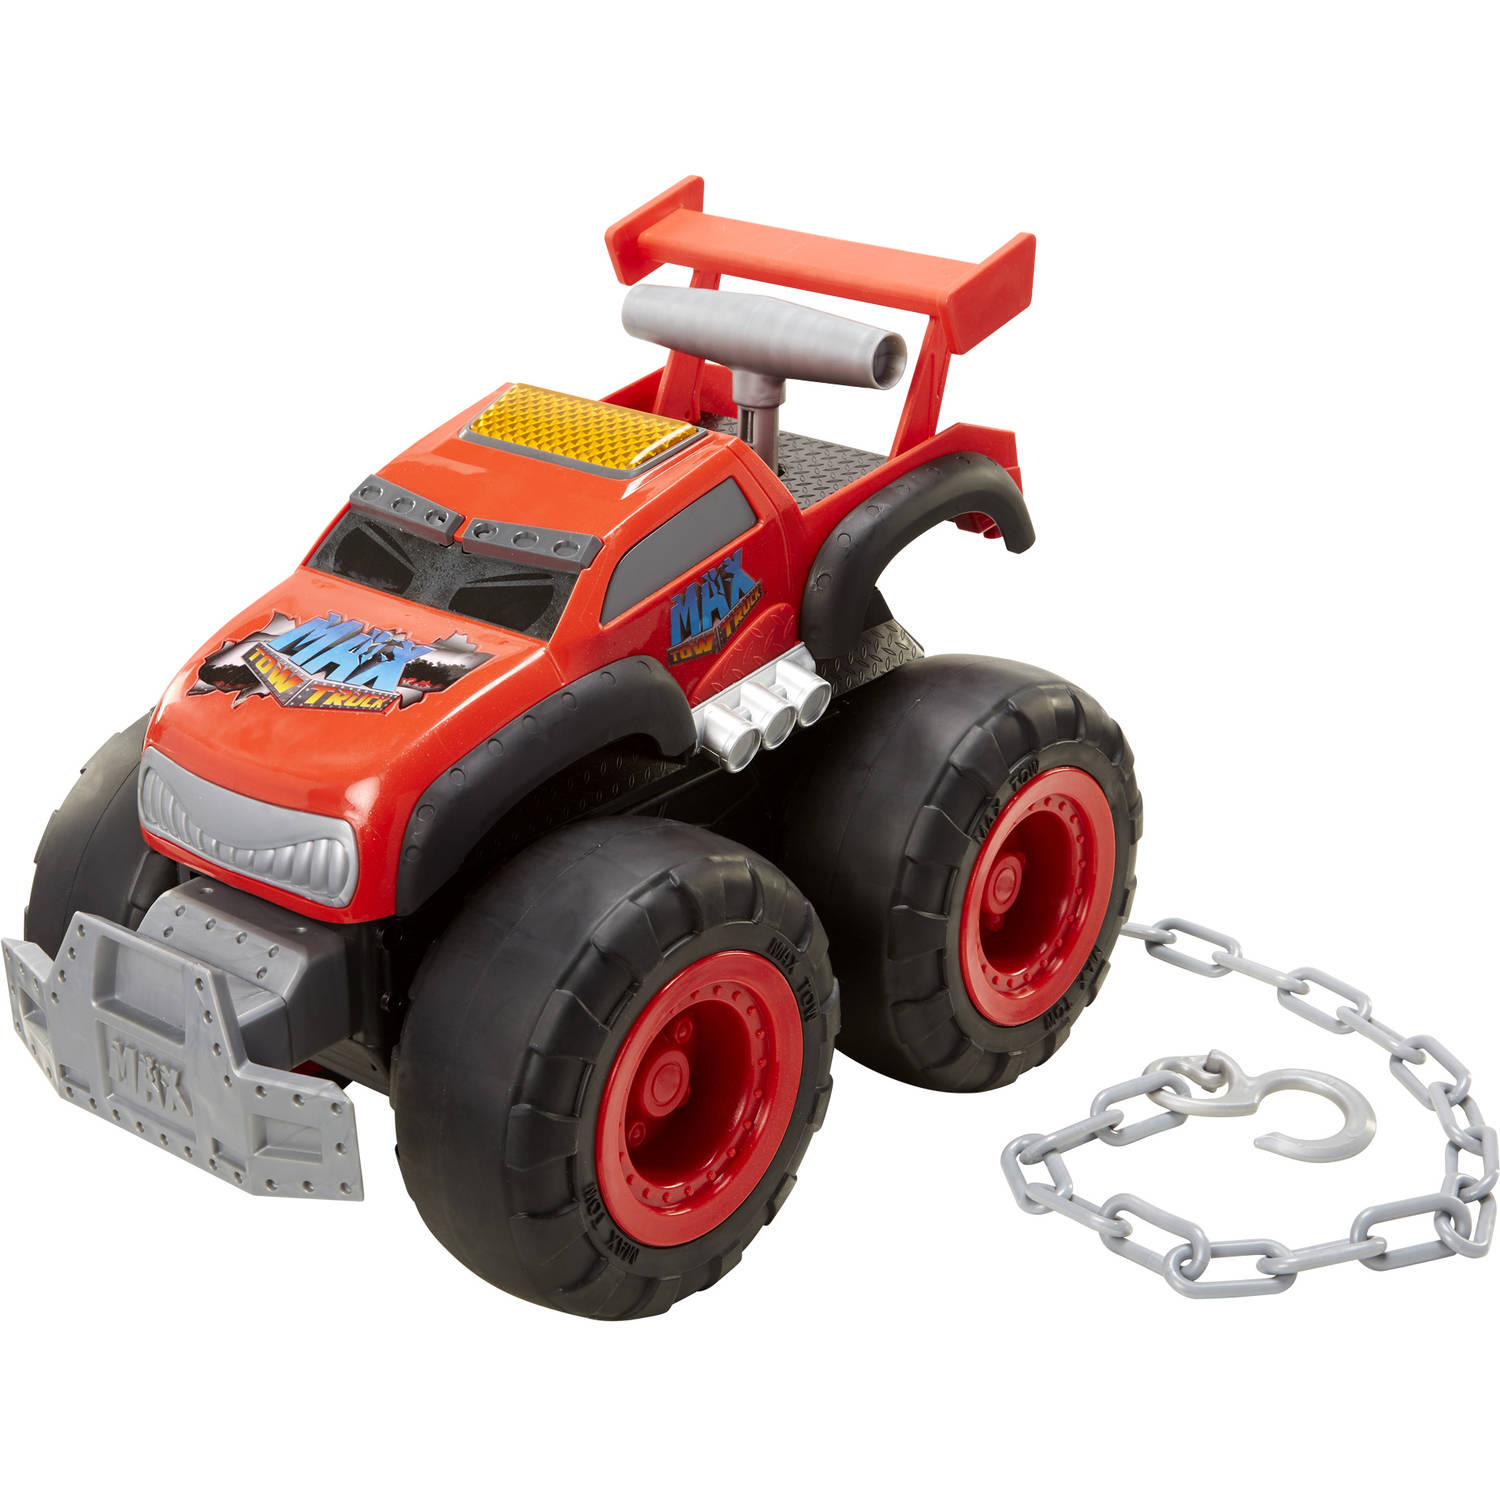 Max Tow Truck Turbo Speed, Red by ROOT LAND PLASTIC FACTORY